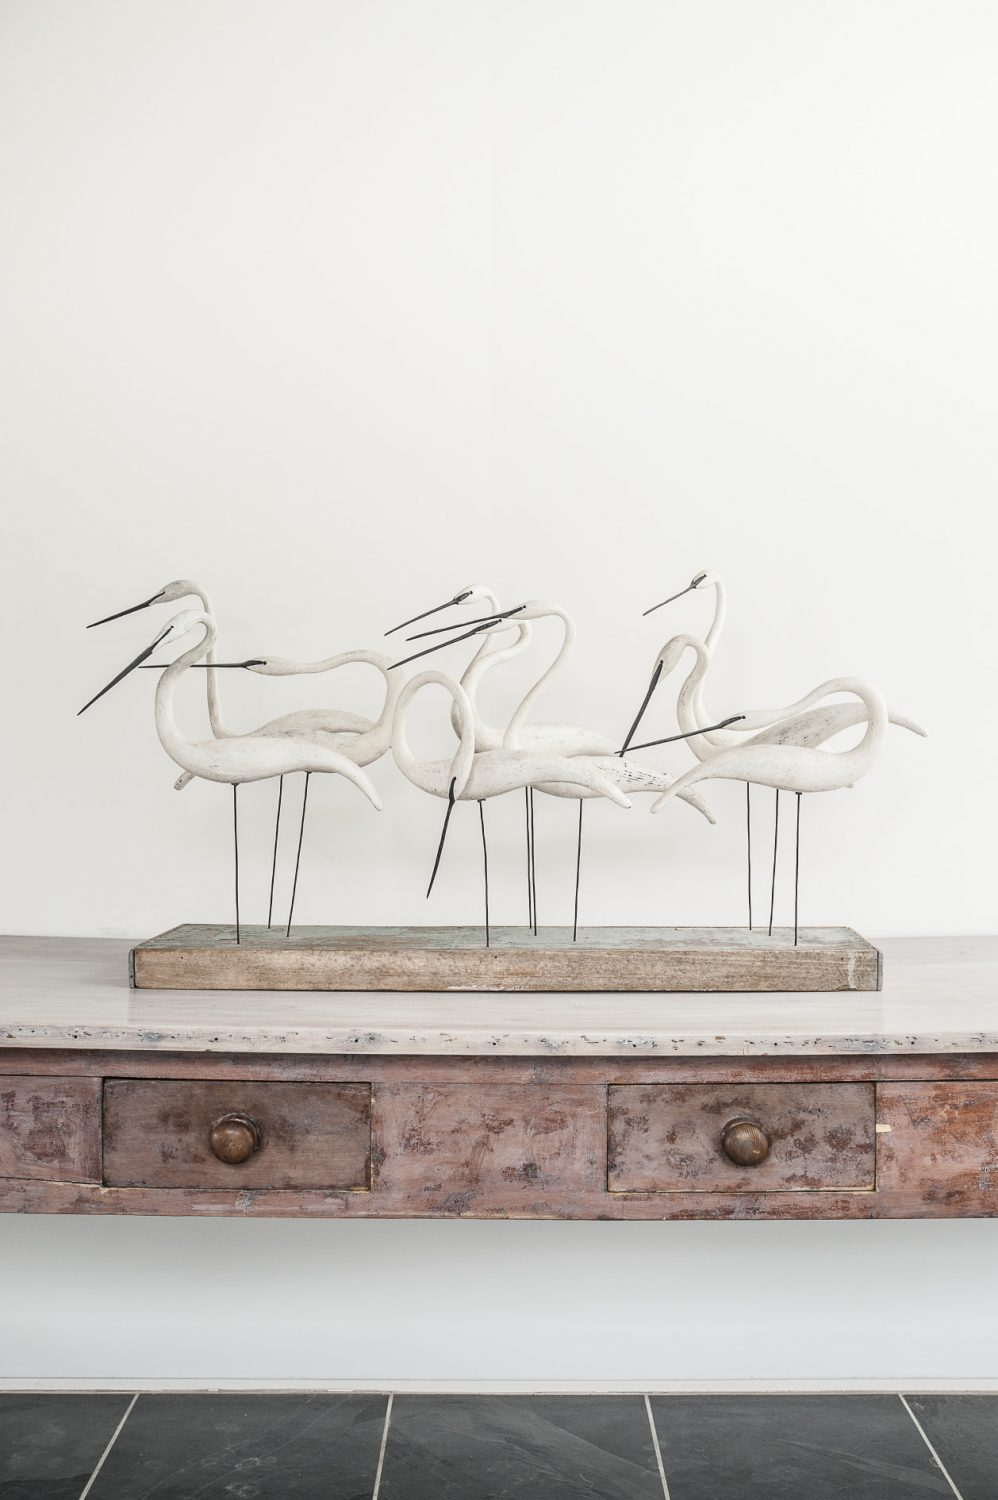 A driftwood sculpture of a group of egrets by Essex artist Guy Taplin stands on a long distressed five-drawer table from a Liverpool convent in the hallway